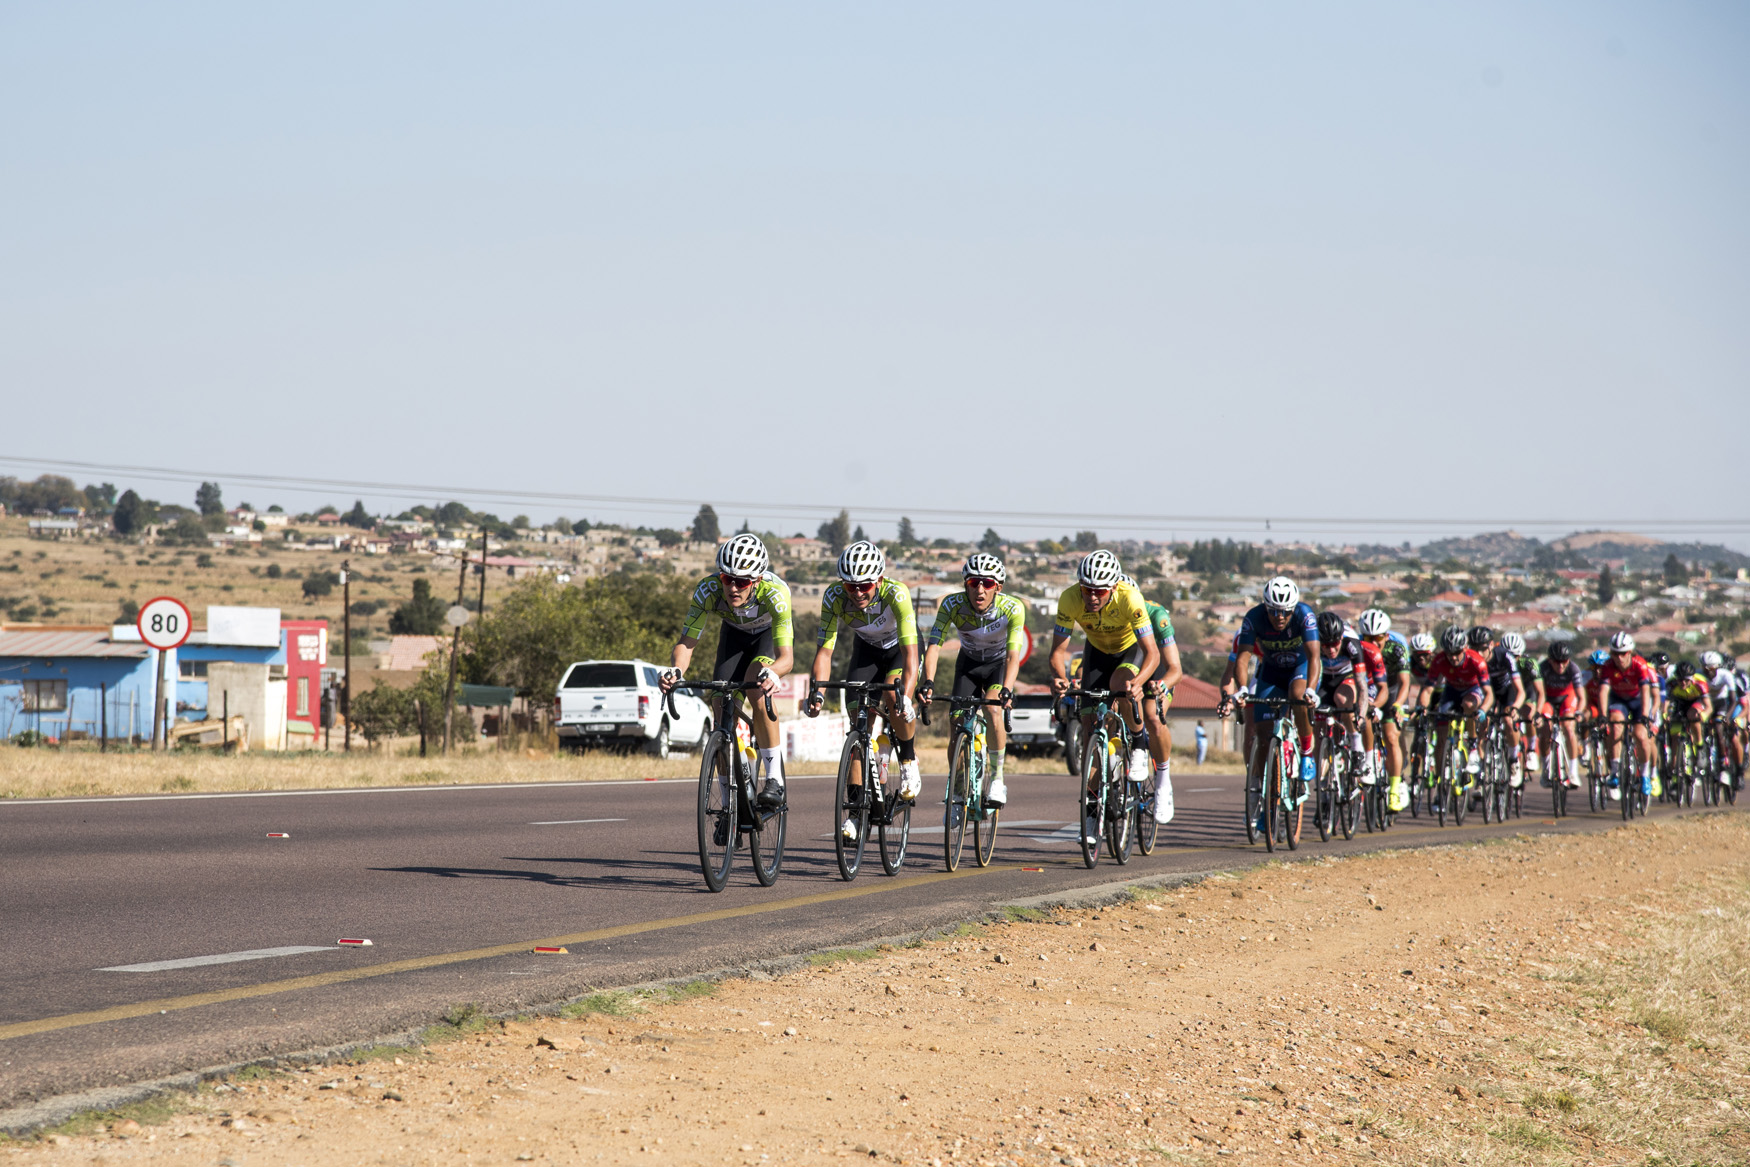 TEG Continental with their yellow and green jersey riders in tow drive the pace hard early in the race from Polokwane to Tzaneen on Stage 2 of the 2019 Tour de Limpopo (UCI 2.2) from 14-18 May © Tour de Limpopo/Andrew Mc Fadden